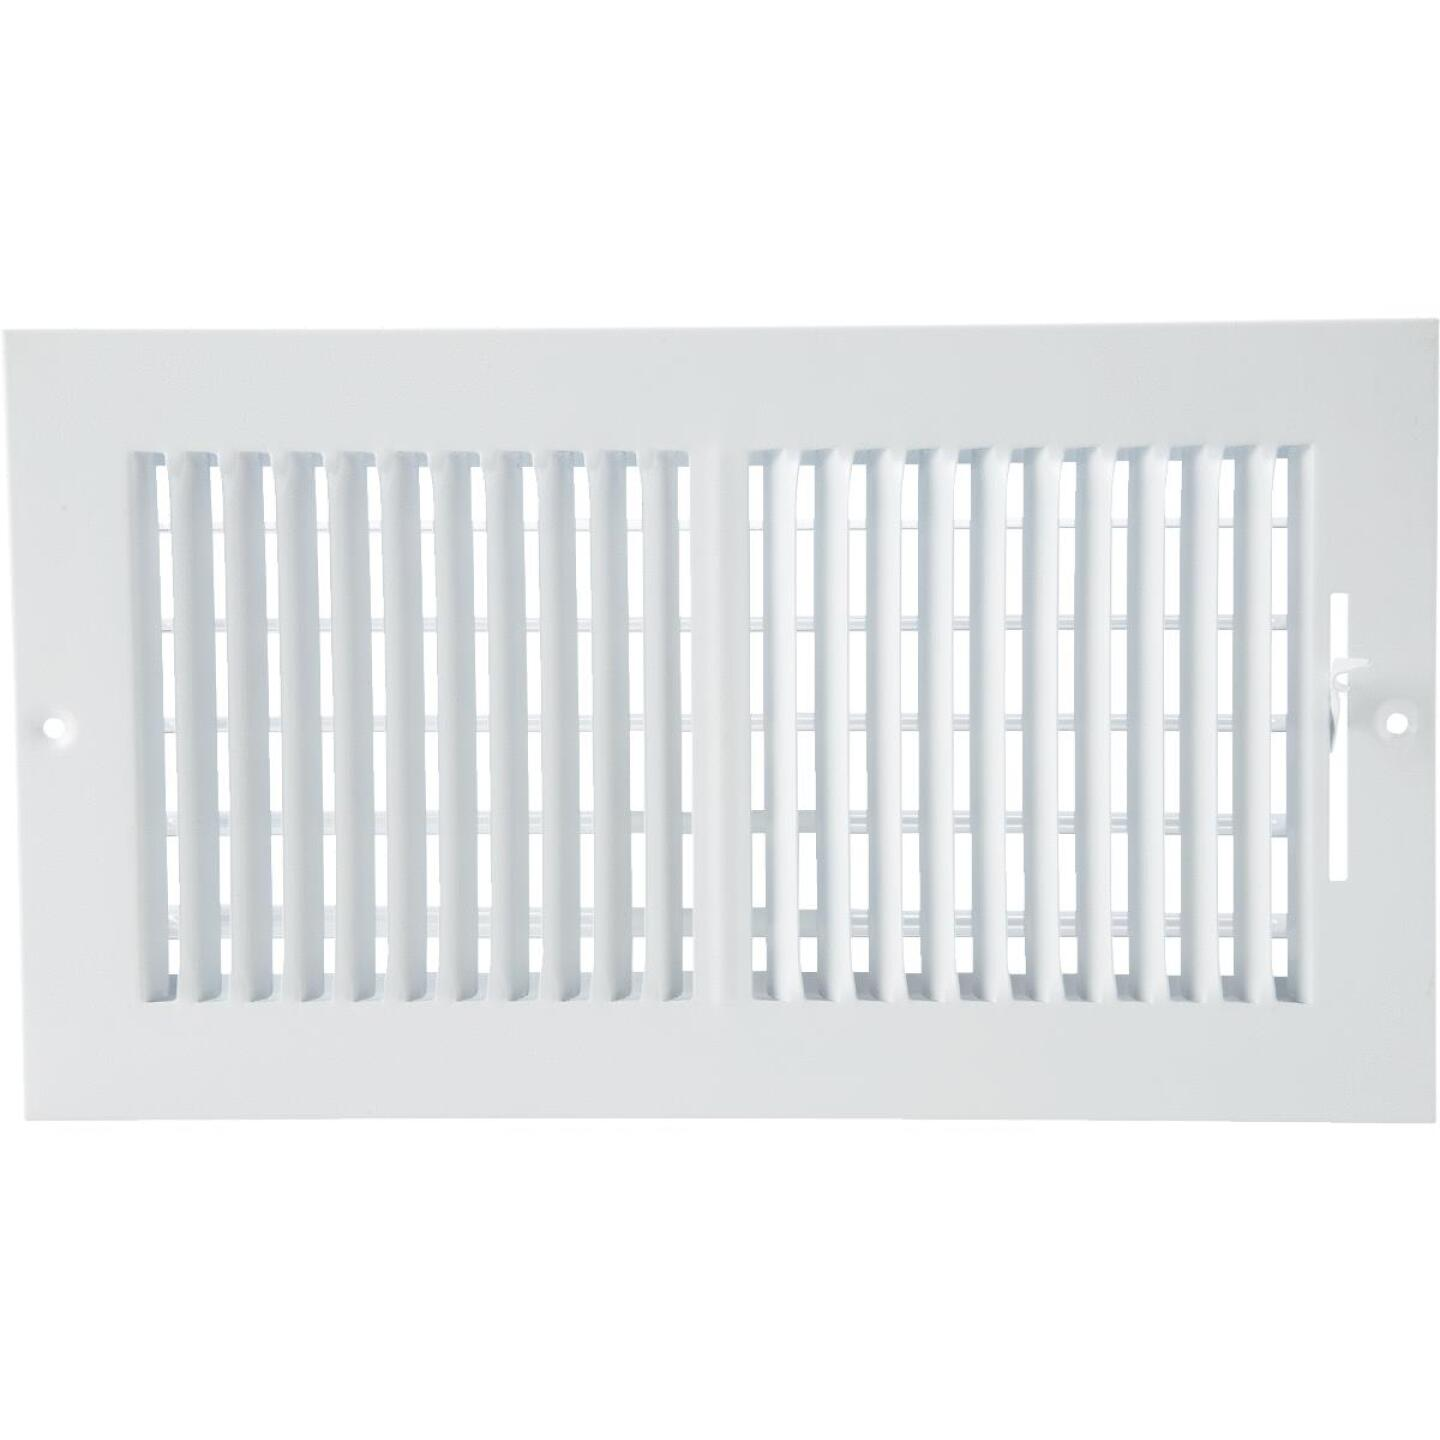 Home Impressions White Steel 7.76 In. Wall Register Image 3